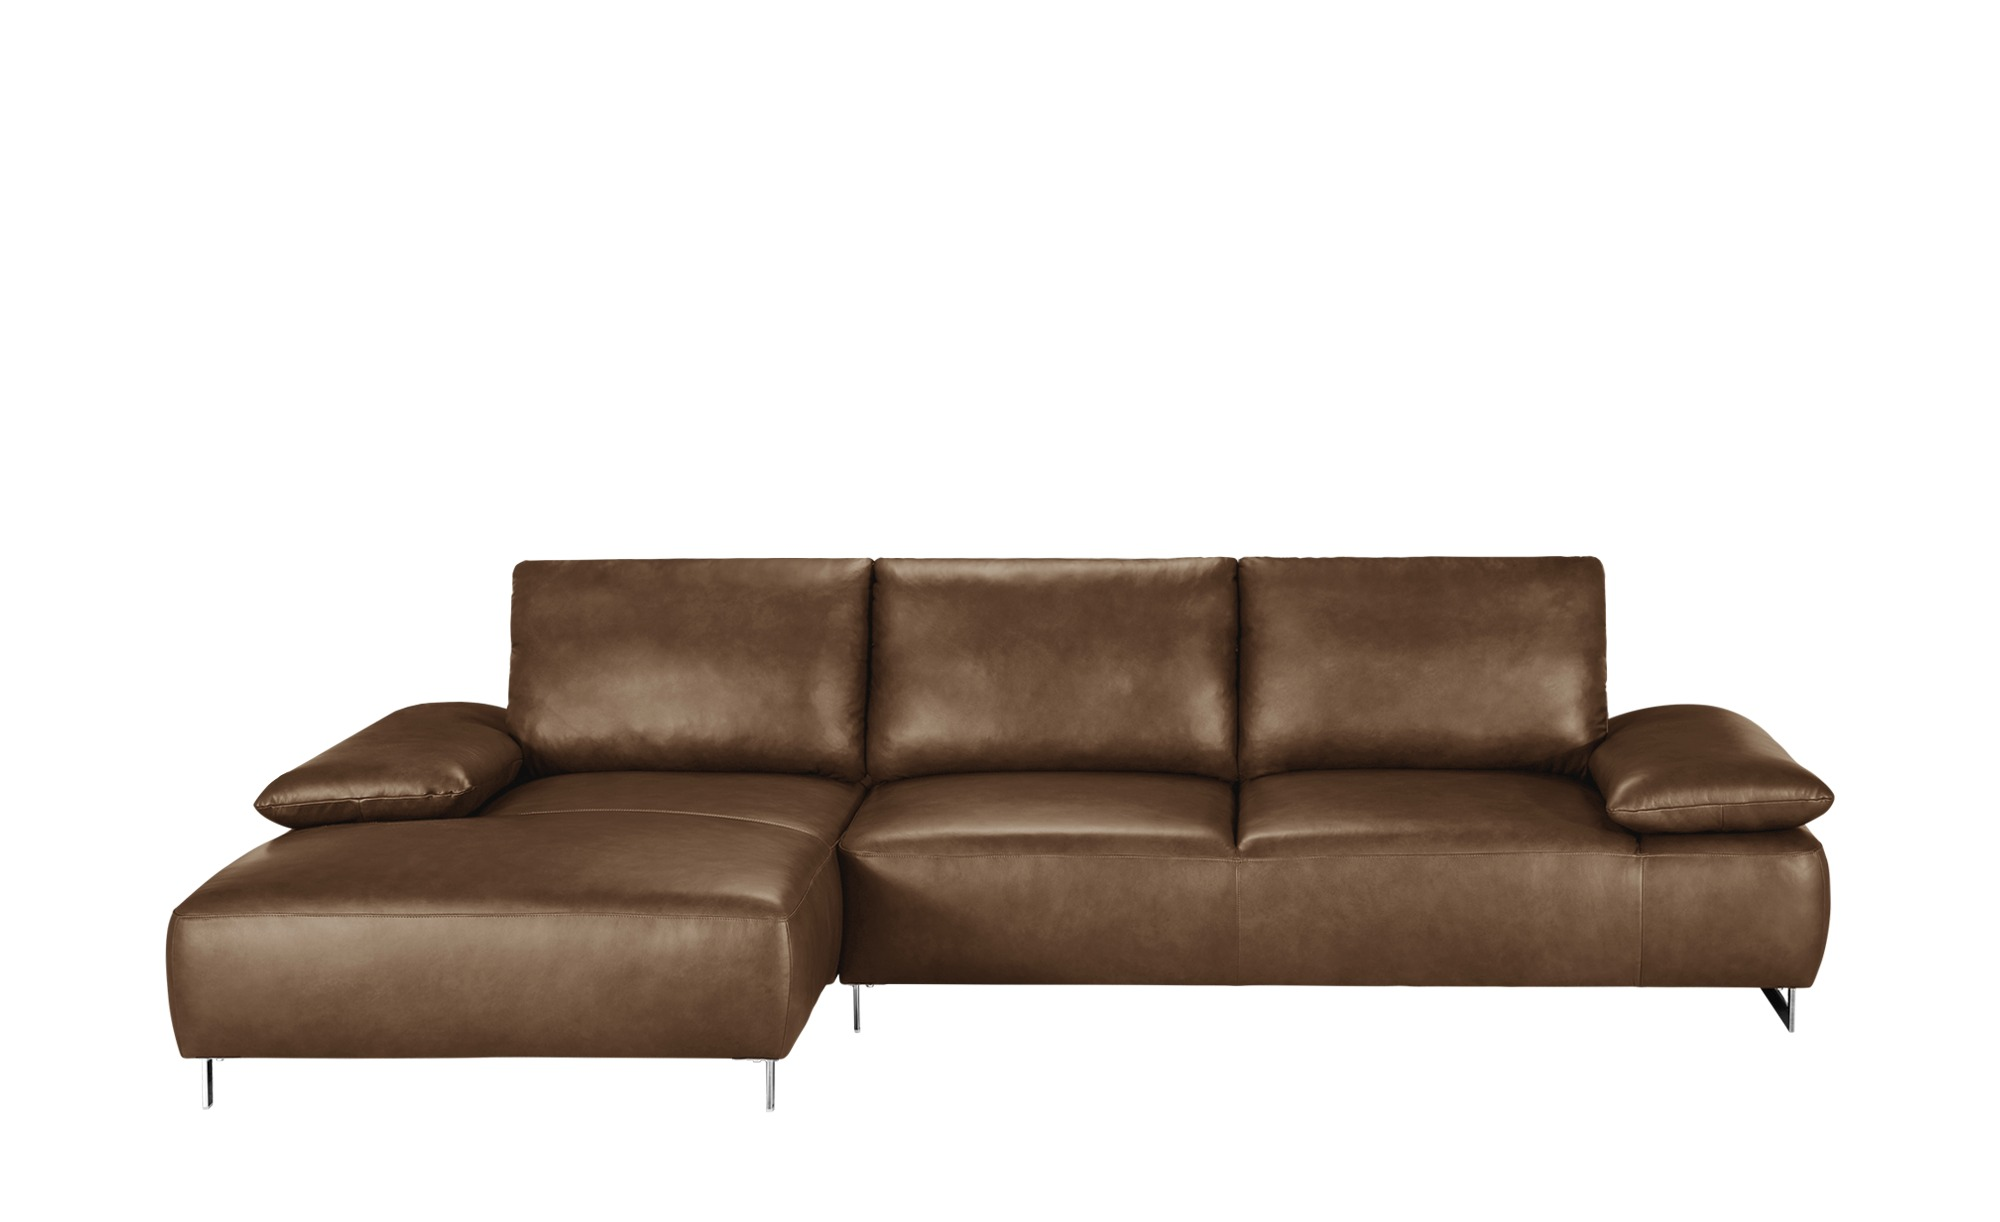 Ecksofa Braun Leder Empire Sofa Couch Sectional Couch